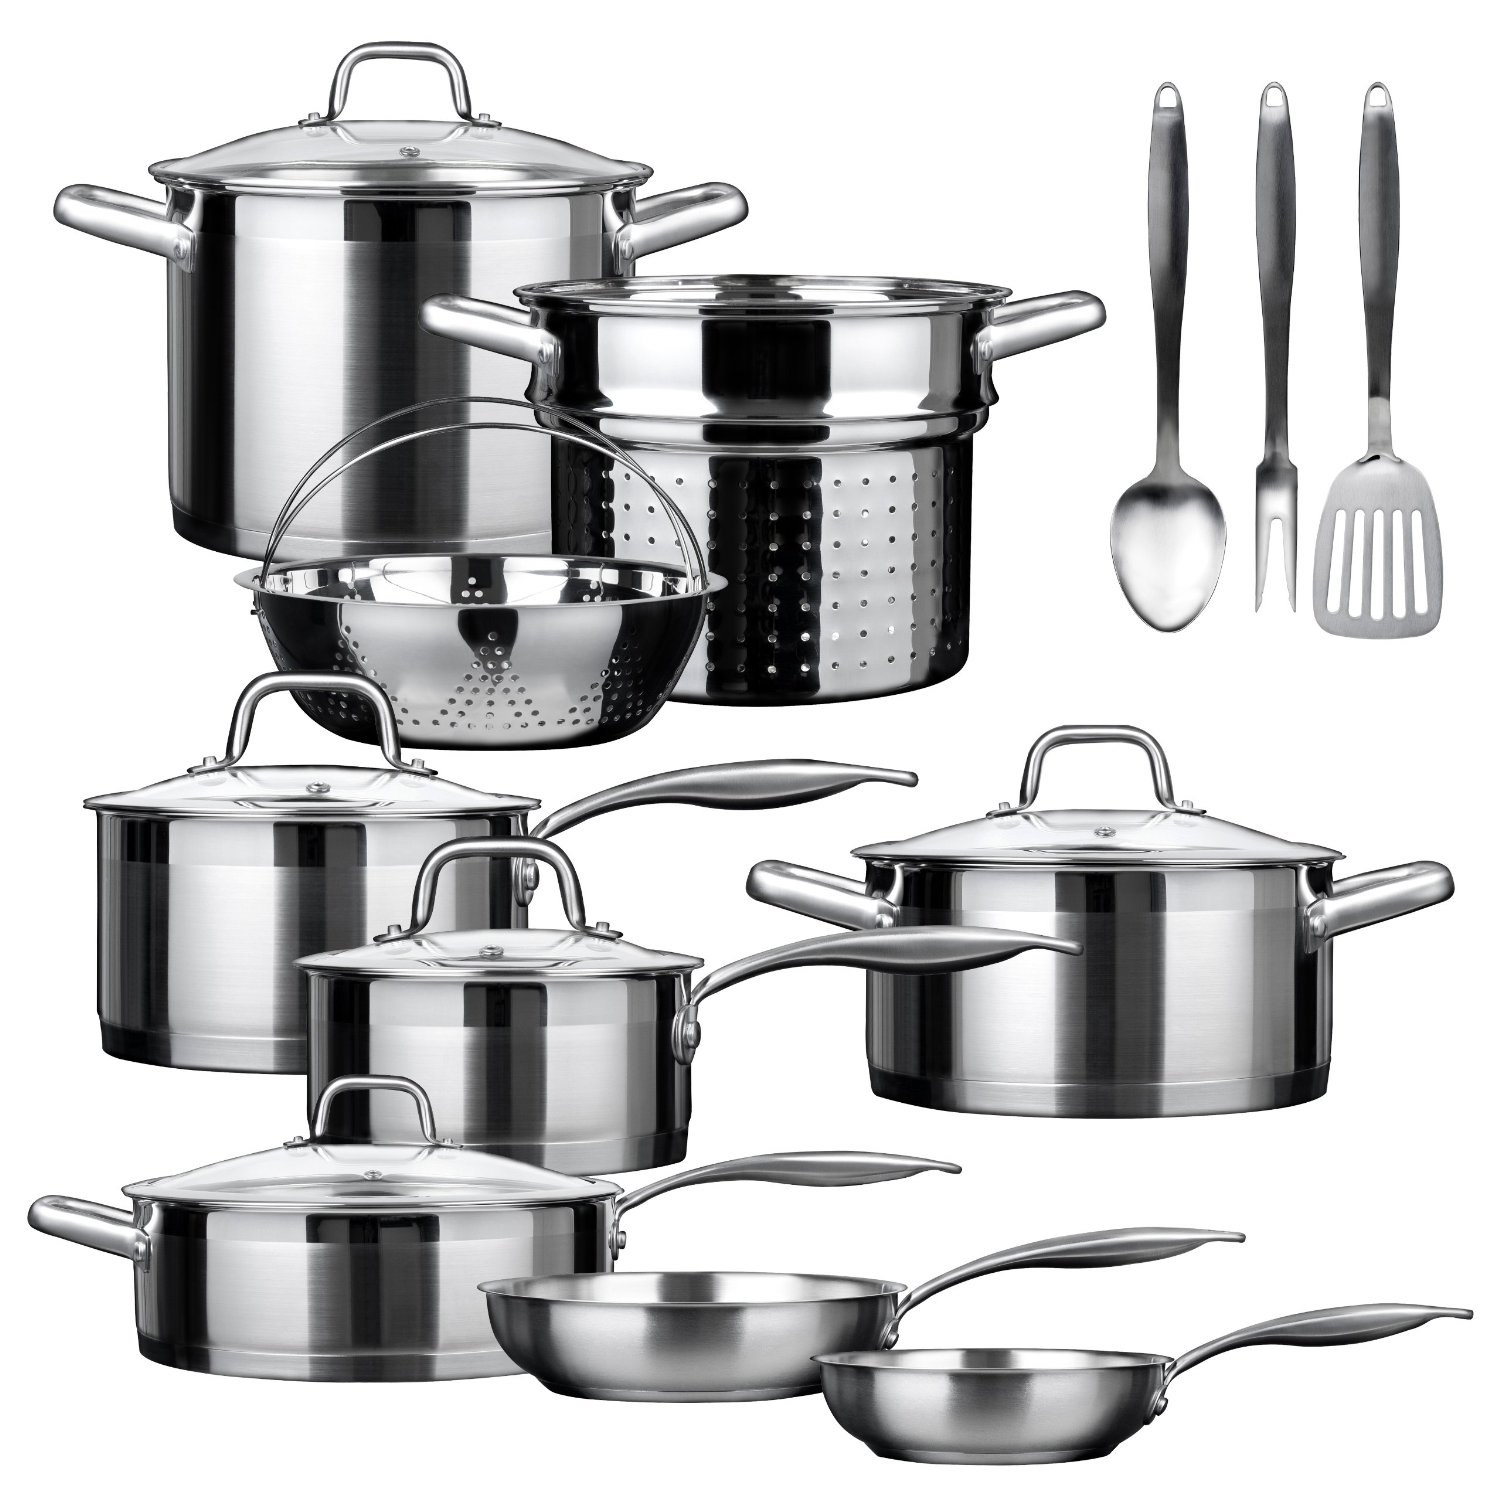 How to choose a cookware for induction cooker: tips 40